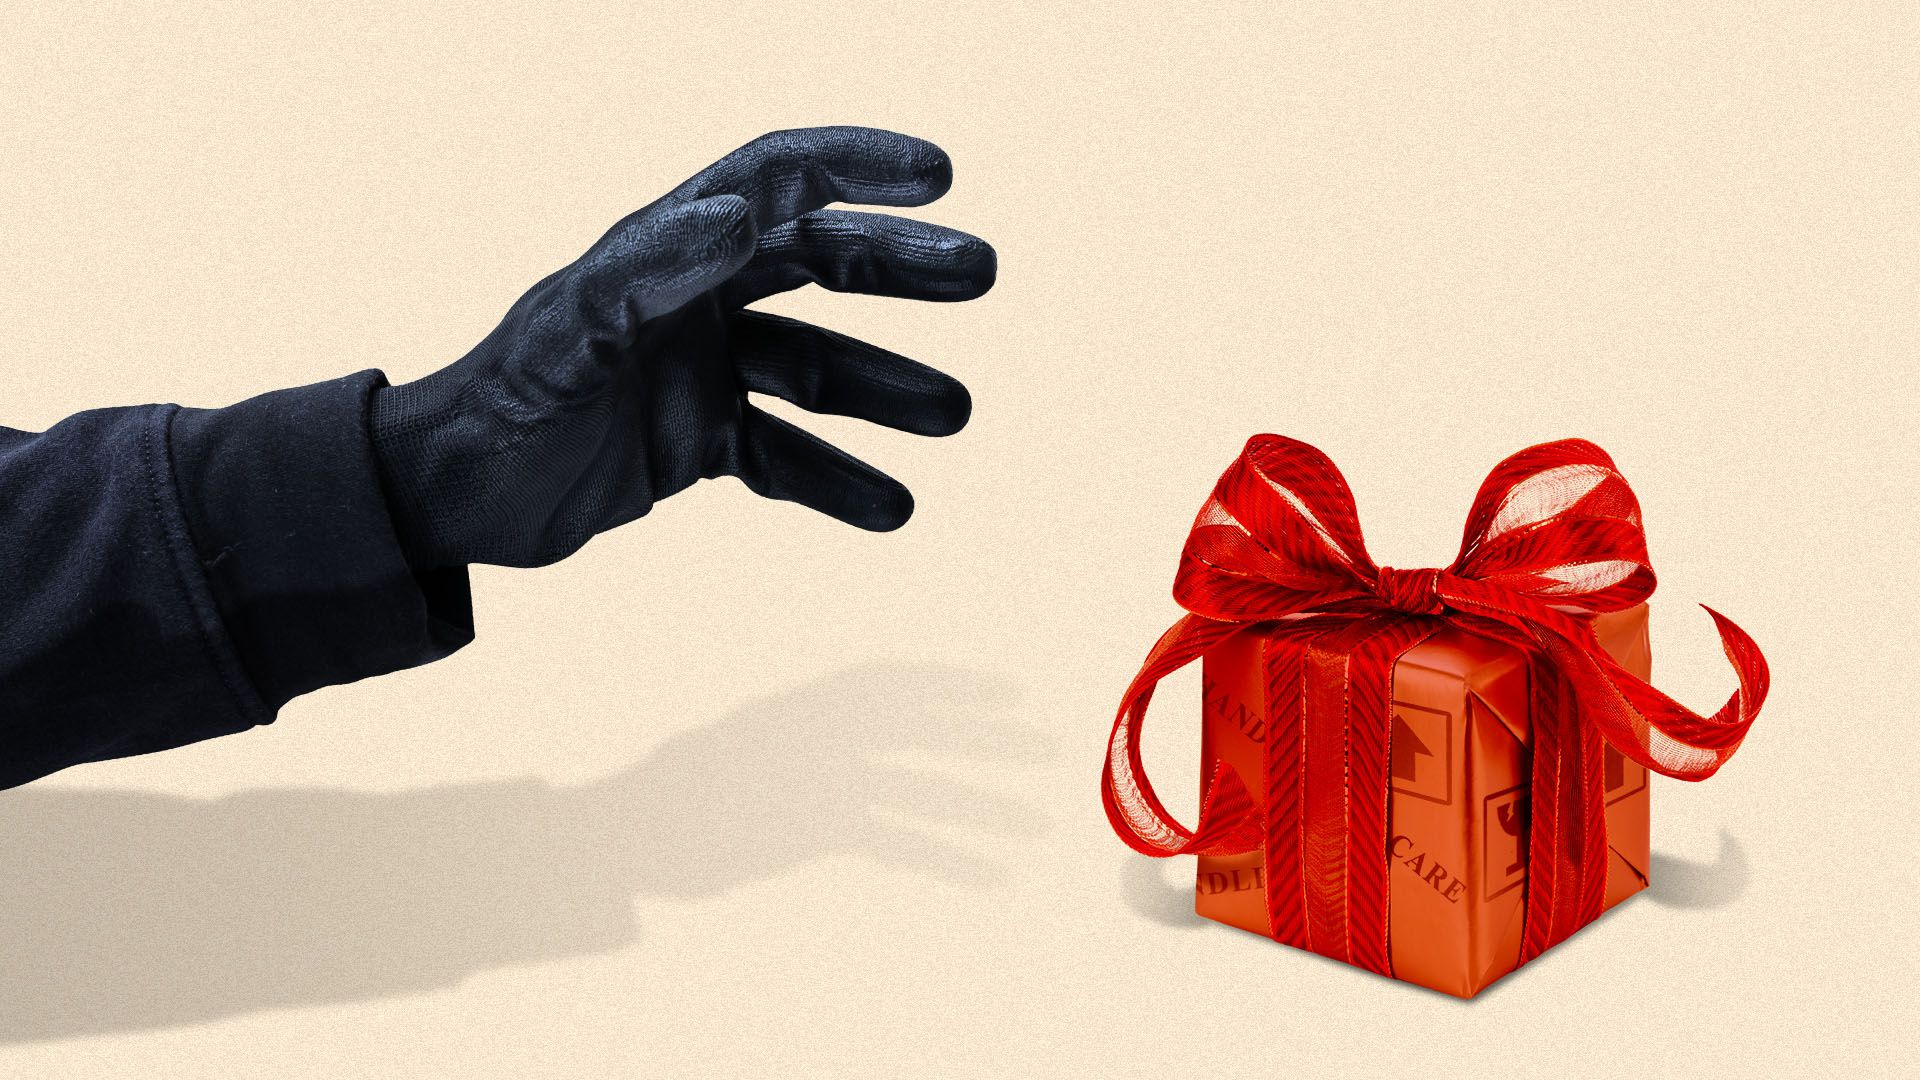 Illustration of a holiday gift covered in package delivery stamps with a gloved hand about to grab it